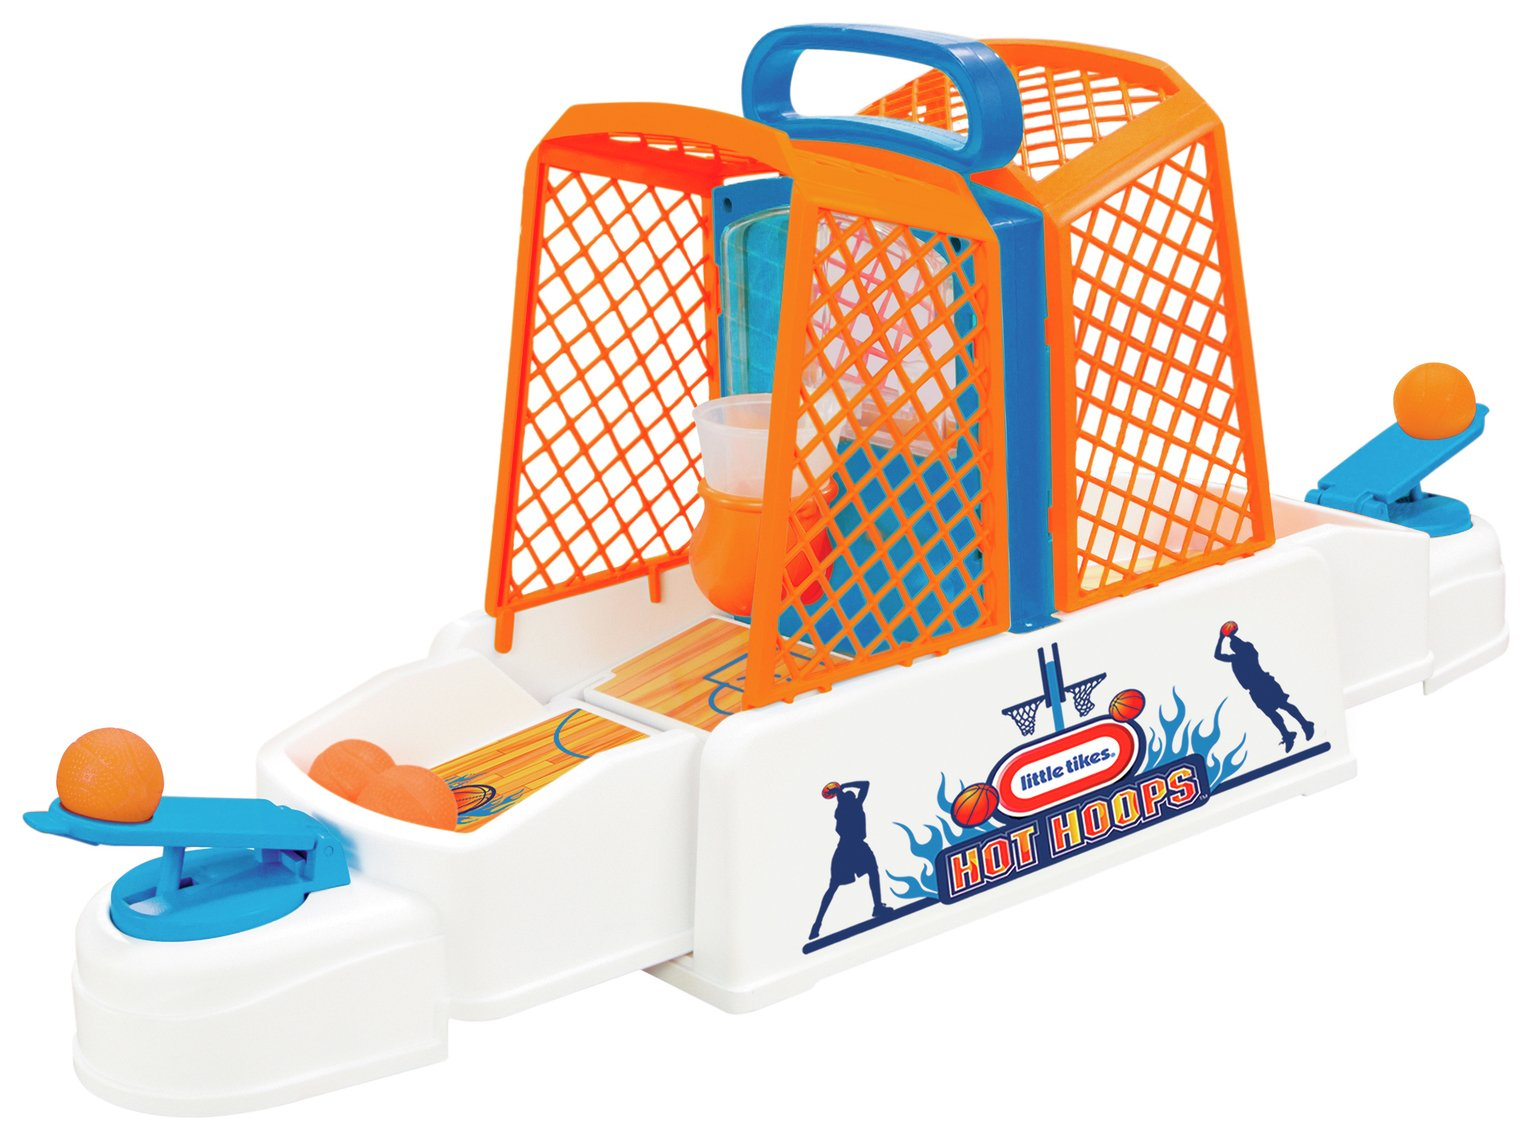 Little Tikes Hot Hoops